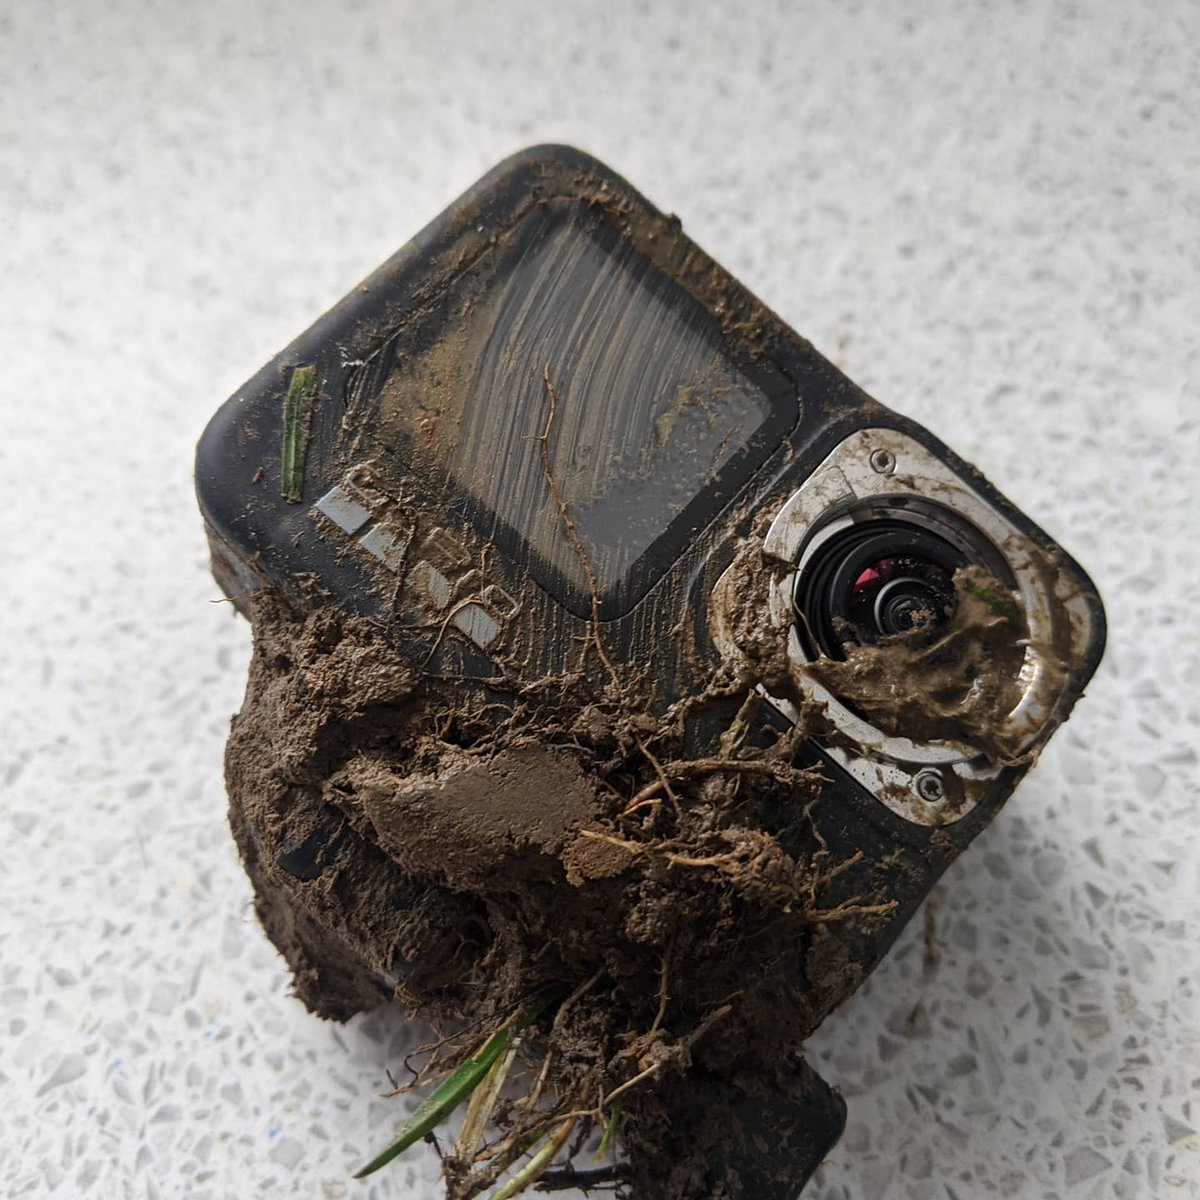 The @gopro took a beating today, unbelievably it actually still works just not that user friendly. Video this #furzday of the #skitrike  #gopro  #wreaked #smashed #drifting